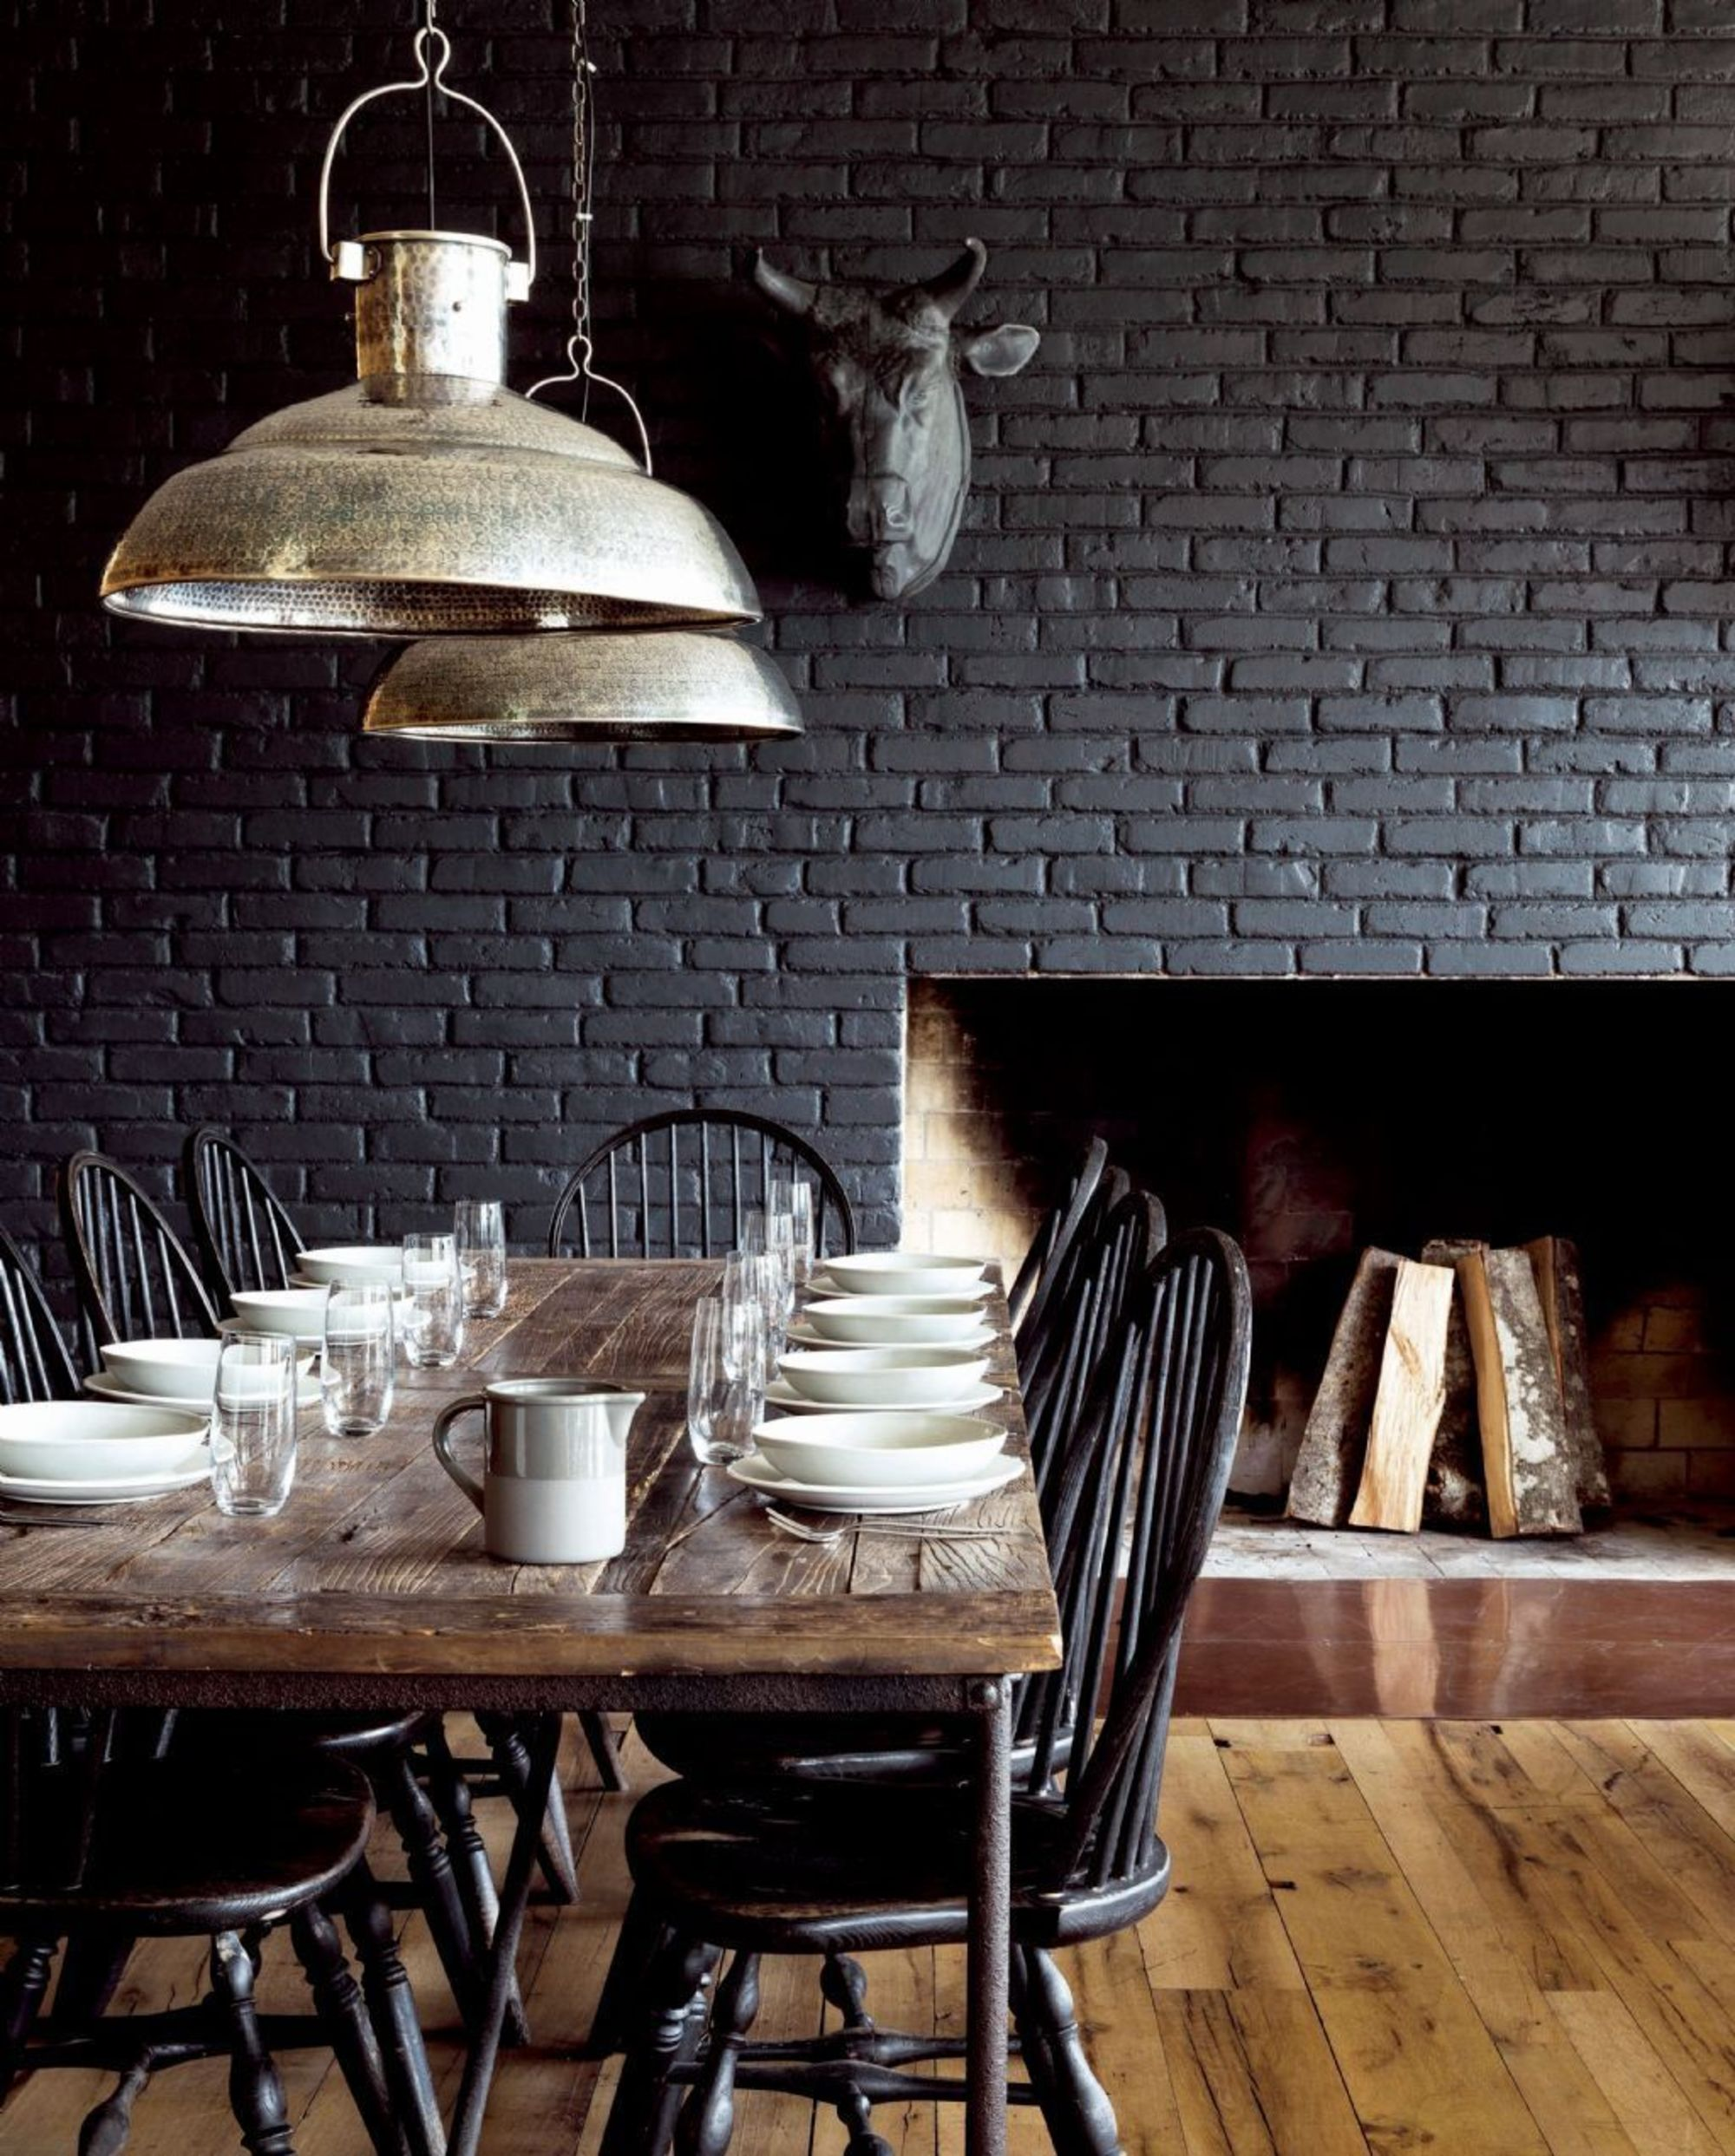 Black Wall Interior Brick For Texture